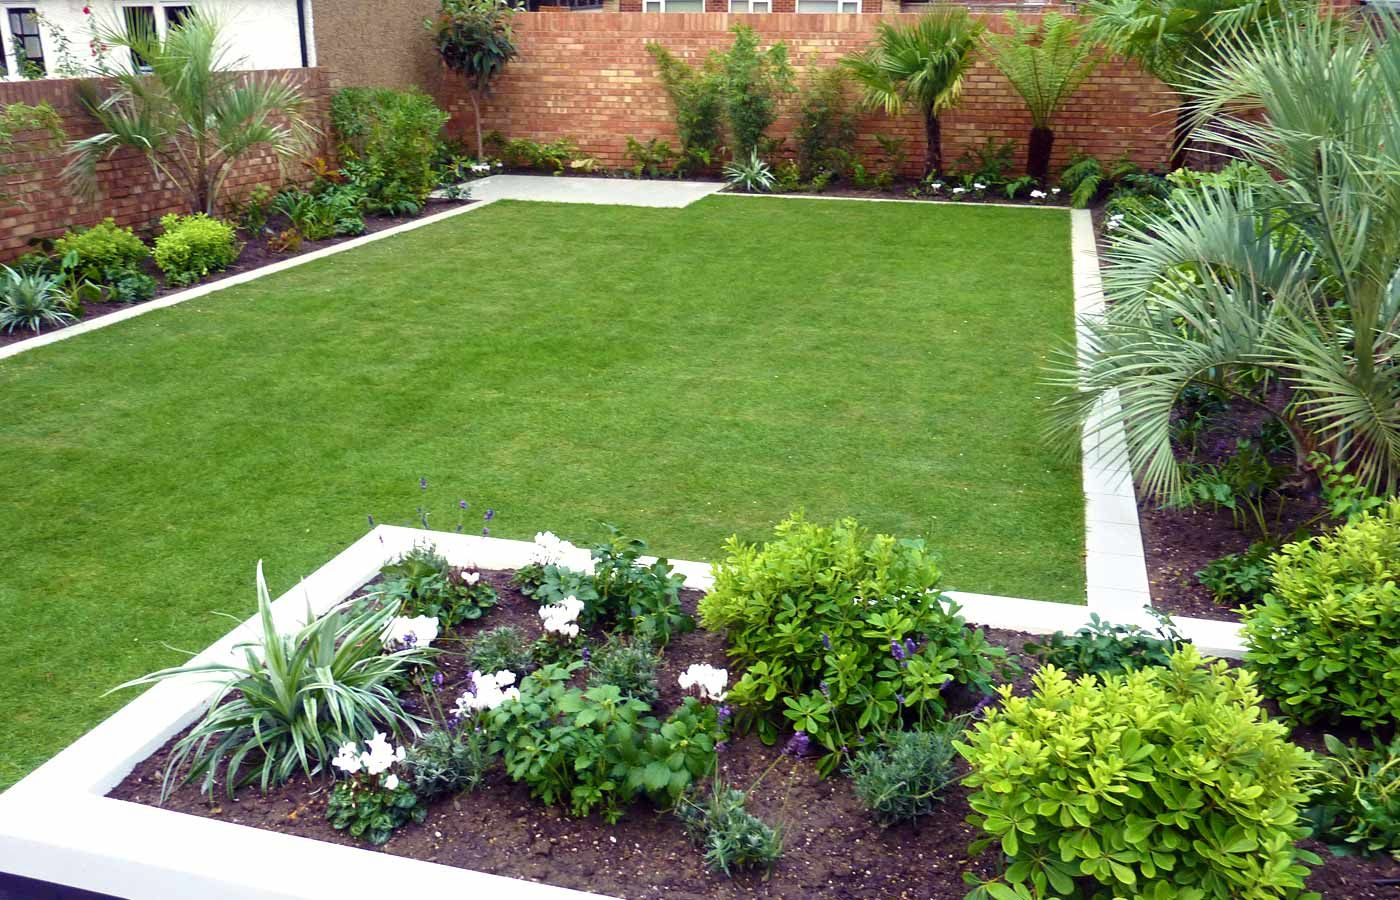 Medium Sized Backyard Landscape Ideas With Grass And Bamboo | ... Ideas :  Simple